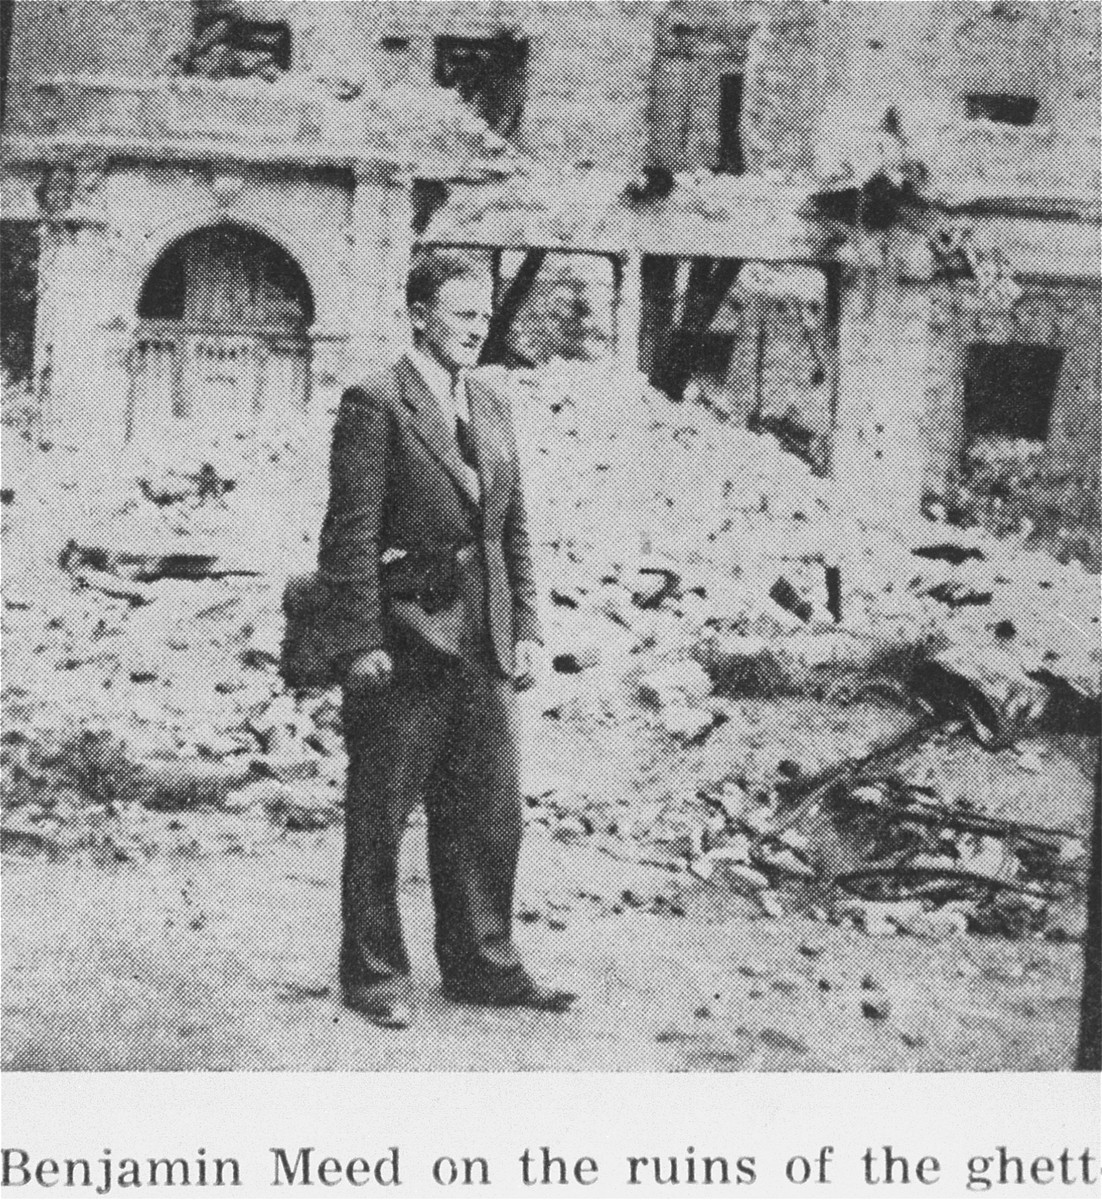 While living in hiding on the Aryan side of Warsaw, Benjamin Miedzyrzecki returns to the site of the Warsaw ghetto, where he poses among the ruins.